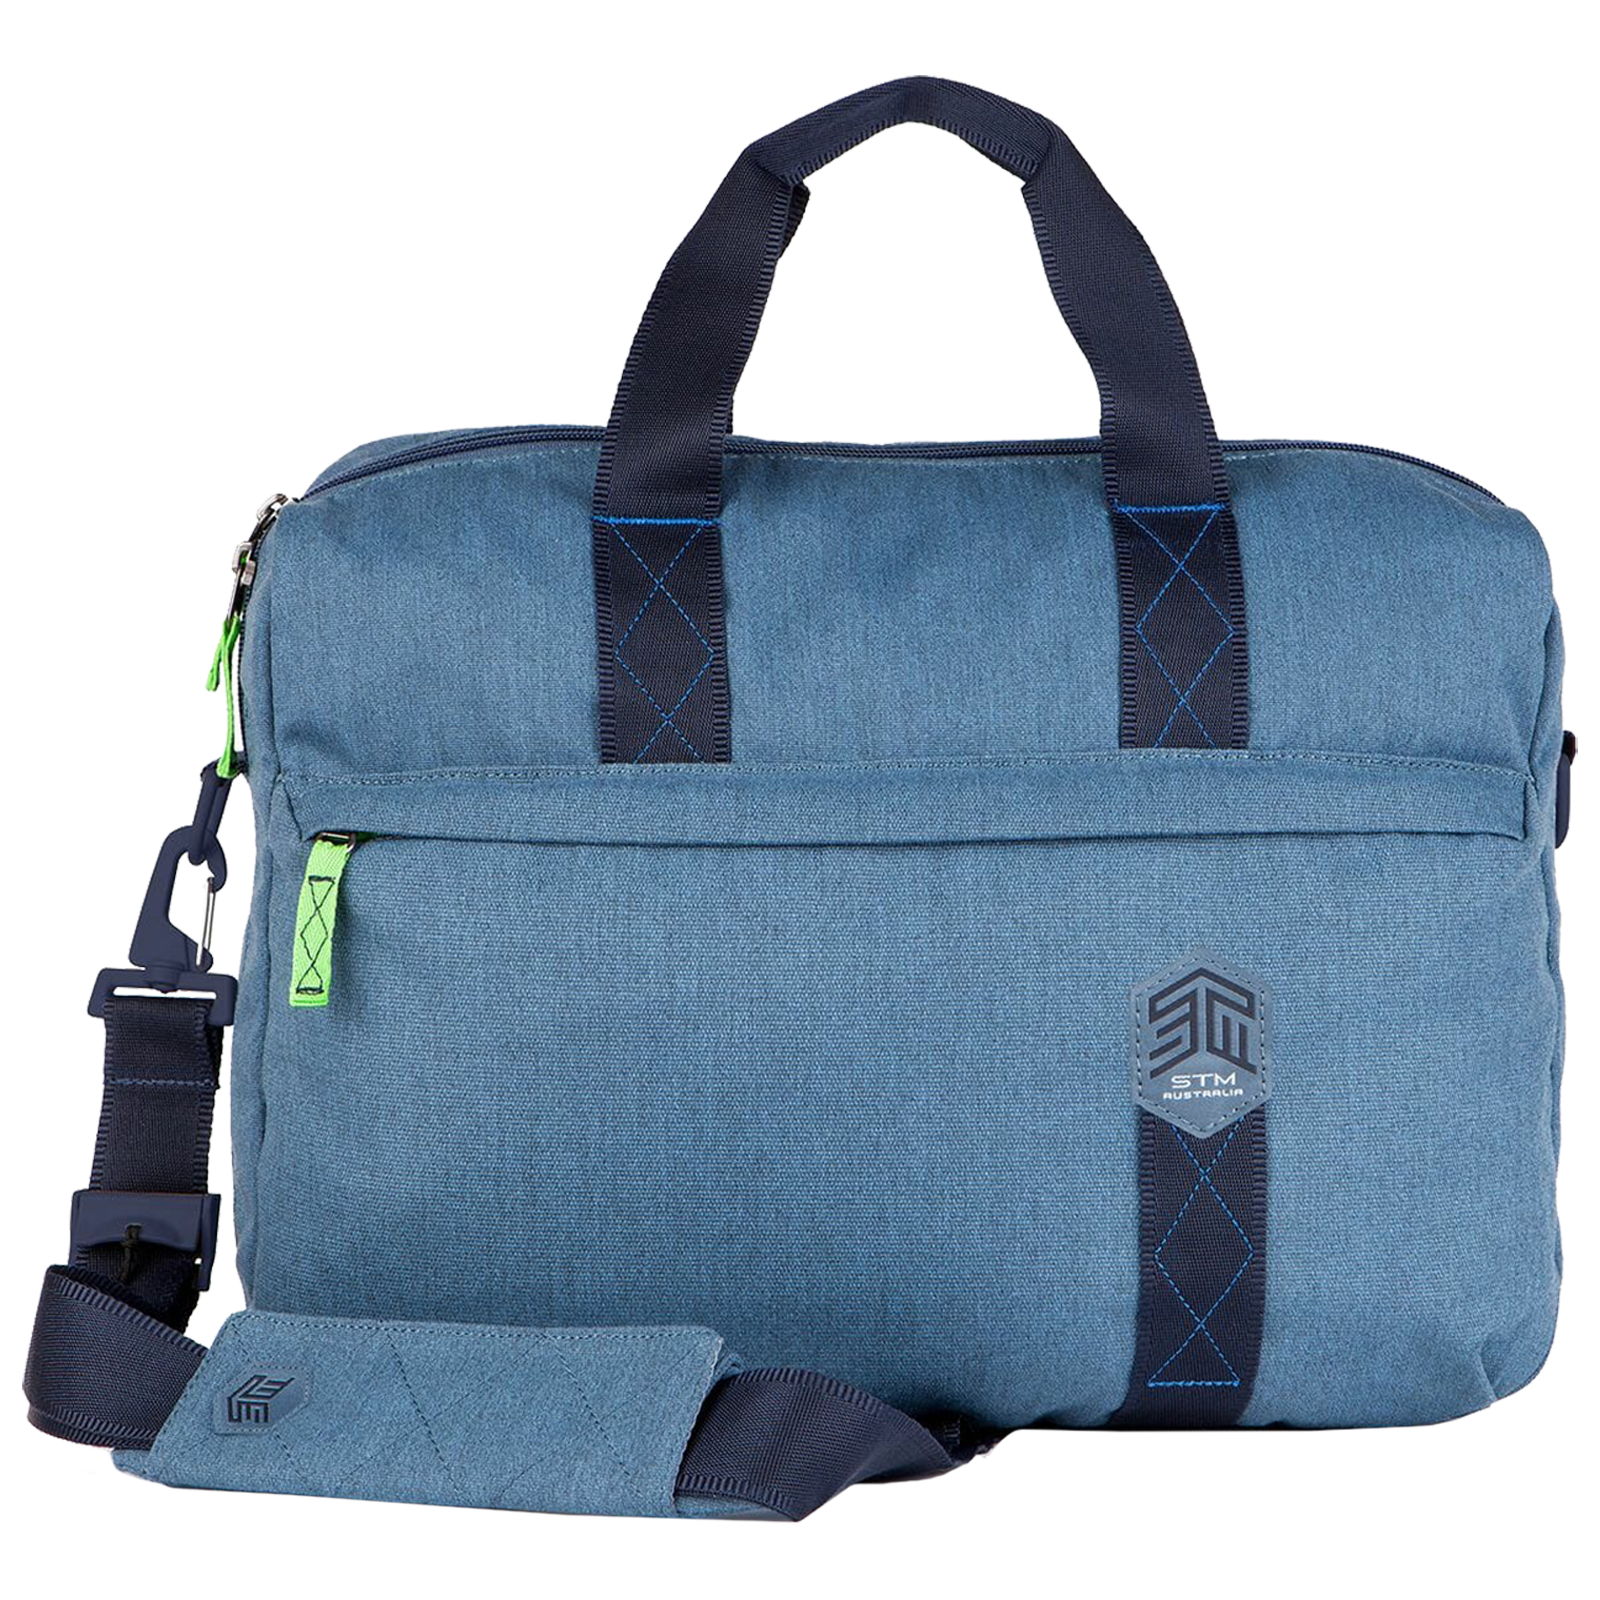 STM Judge Brief 14 Litres Polyester Carry Case for 15 Inch Laptop (Water Resistant, STM-112-147P-16, China Blue)_1